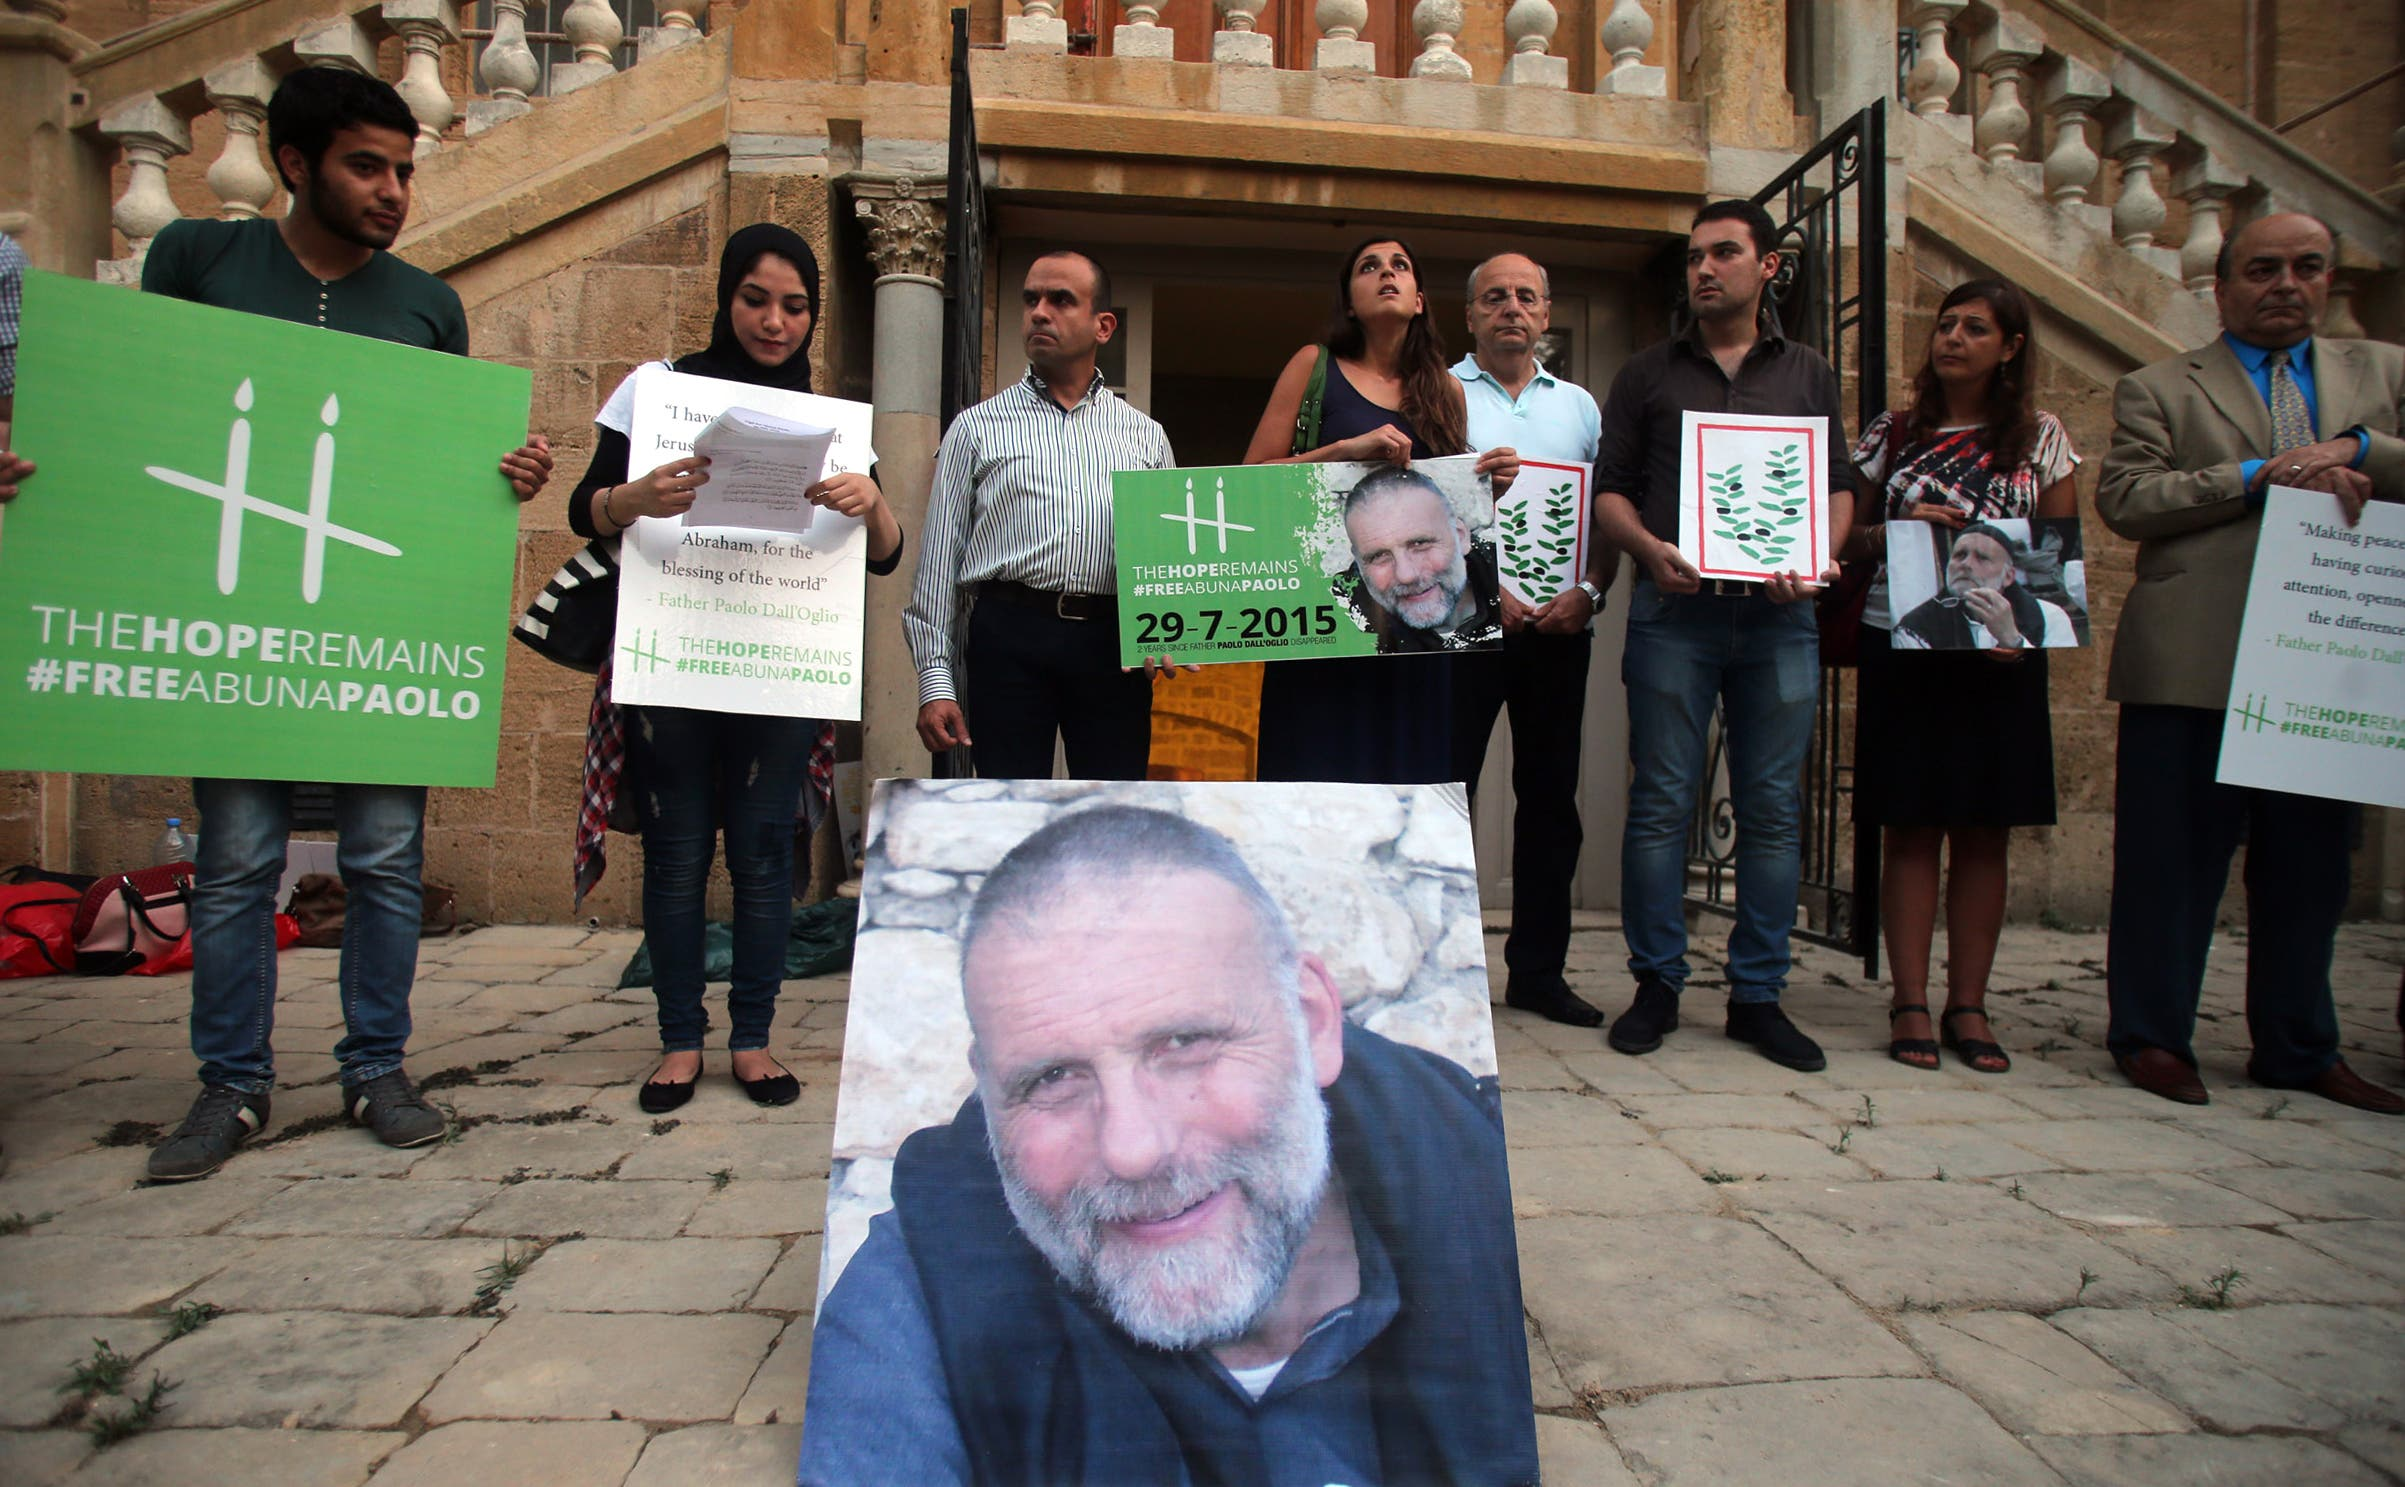 People hold placards during a vigil in solidarity with Italian Jesuit priest Father Paolo Dall'Oglio on July 29, 2015 in Beirut. (AFP)